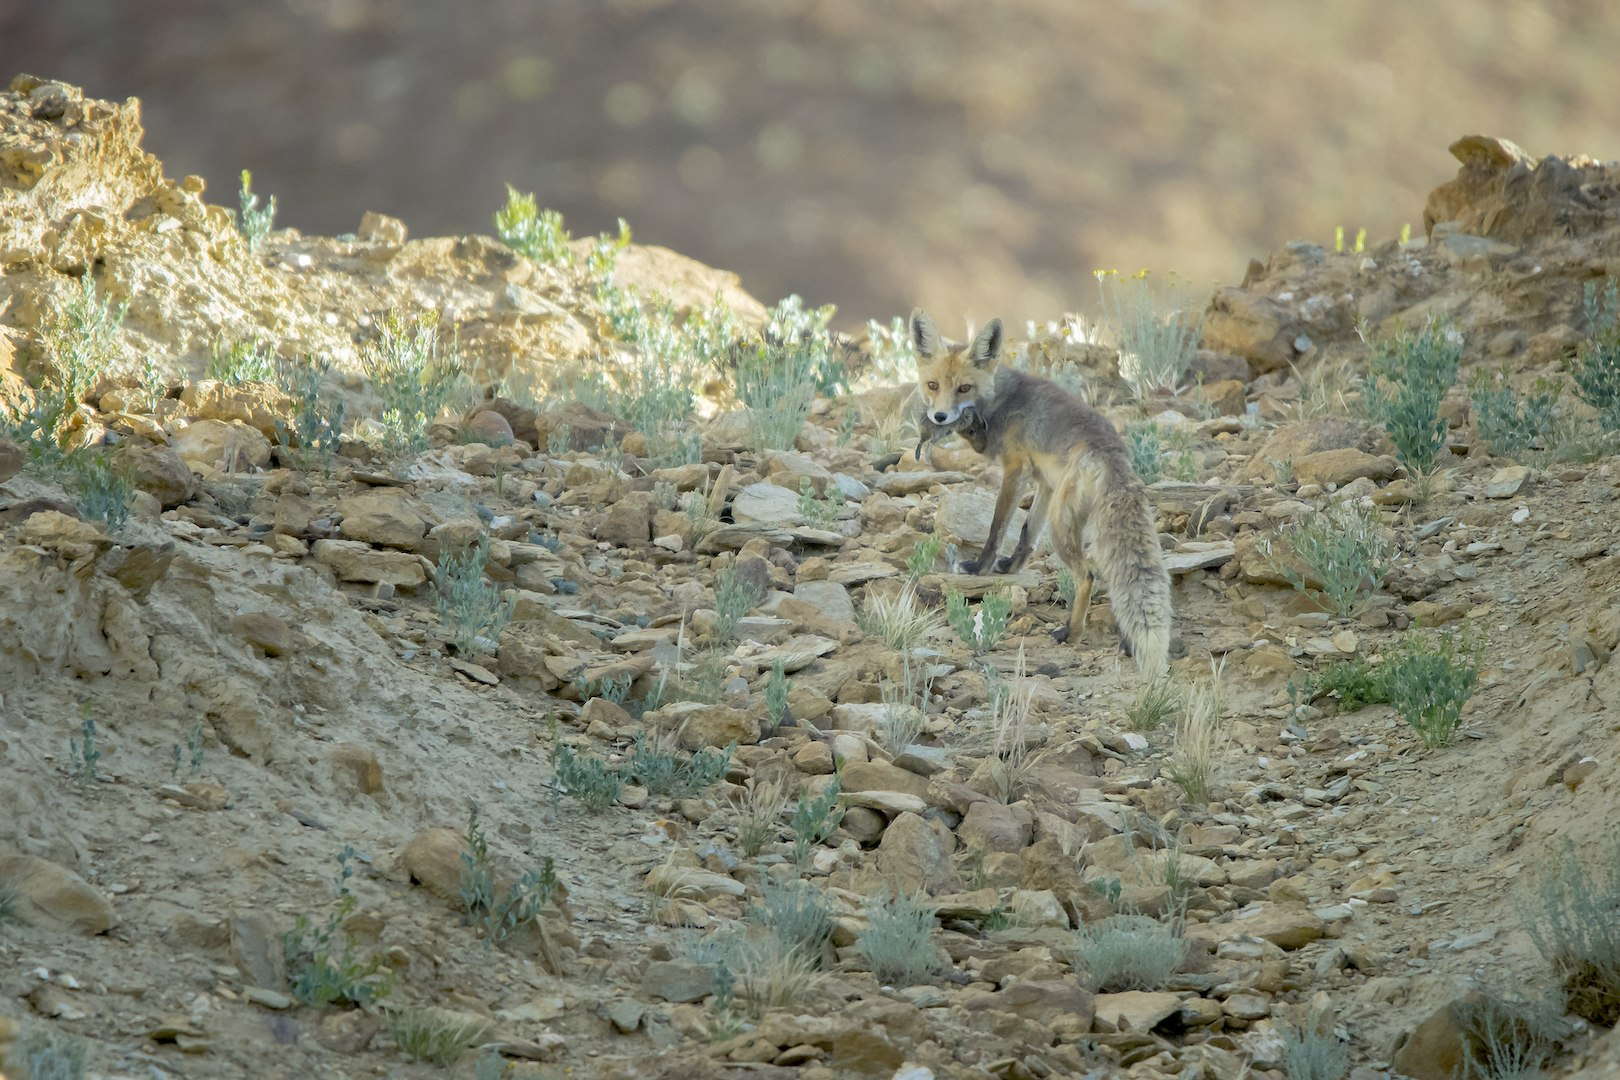 Red foxes have a varied and eclectic diet, which allows them to adapt to a number of landscapes and situations. They are skilled hunters that employ camouflage and swiftness to catch prey, though increasingly, populations around human habitation have begun to rely on garbage dumps for nutrition. Photo: Saurabh Sawant